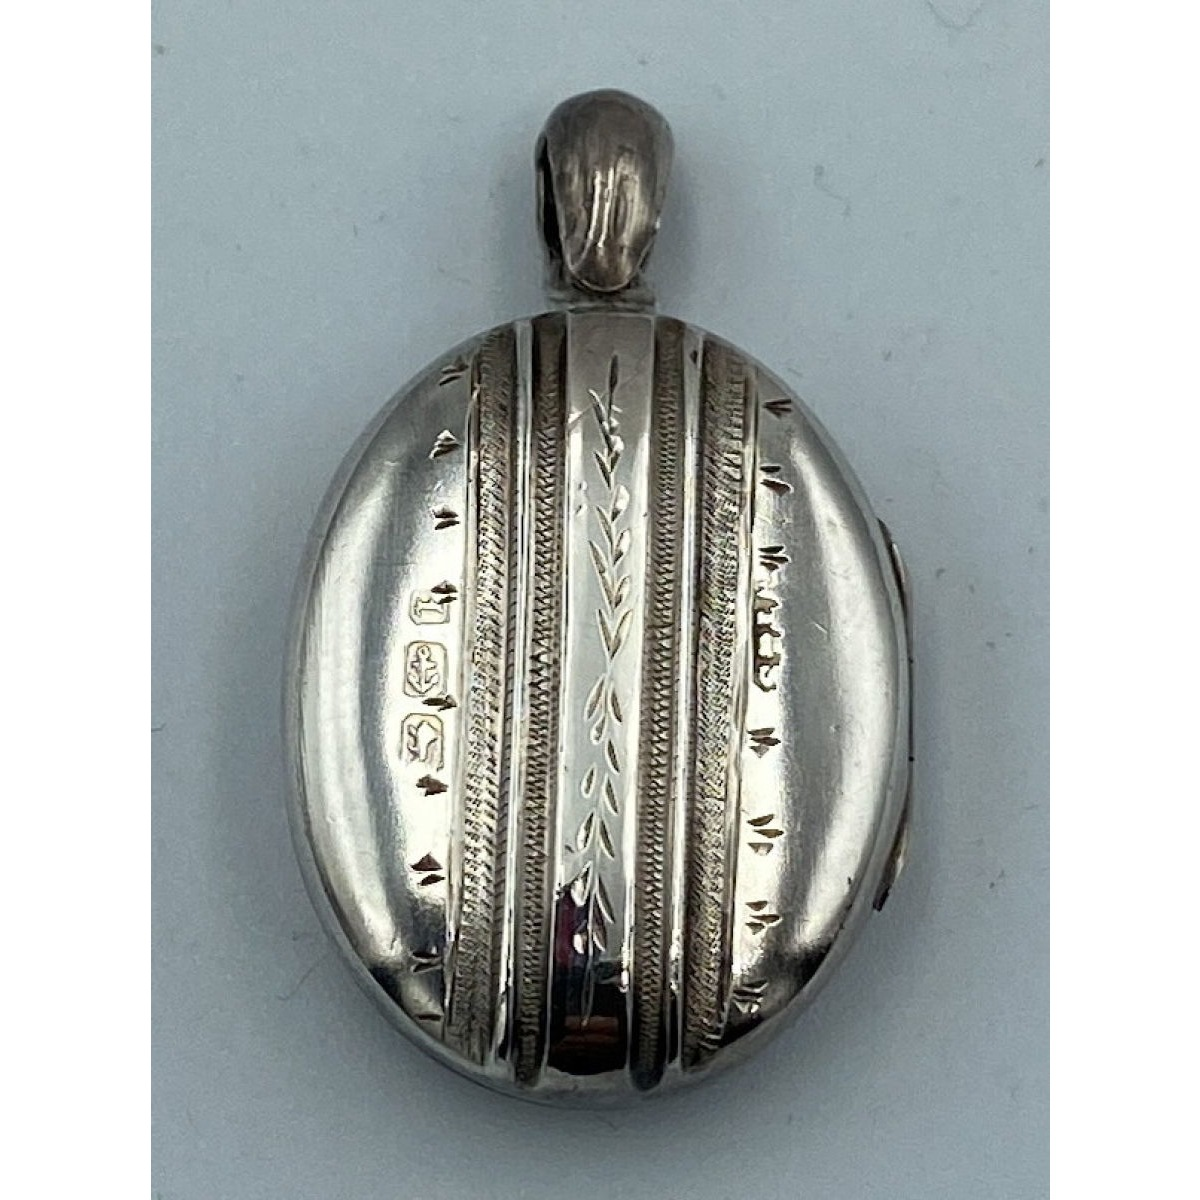 Super Sweet Small Vertically Engraved Antique English Silver Locket